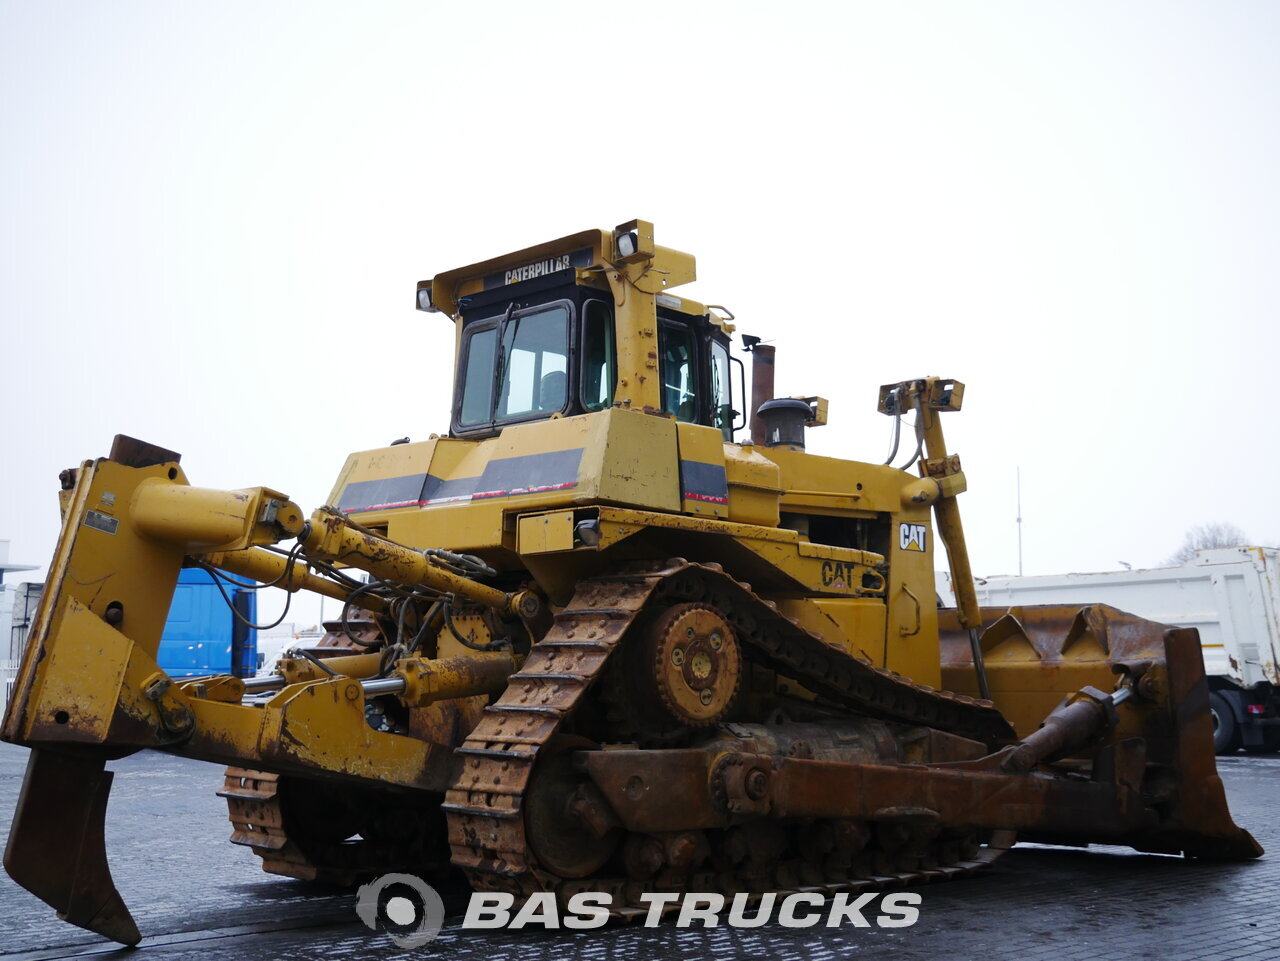 For sale at BAS Machinery: Caterpillar D9R Track 01/2001